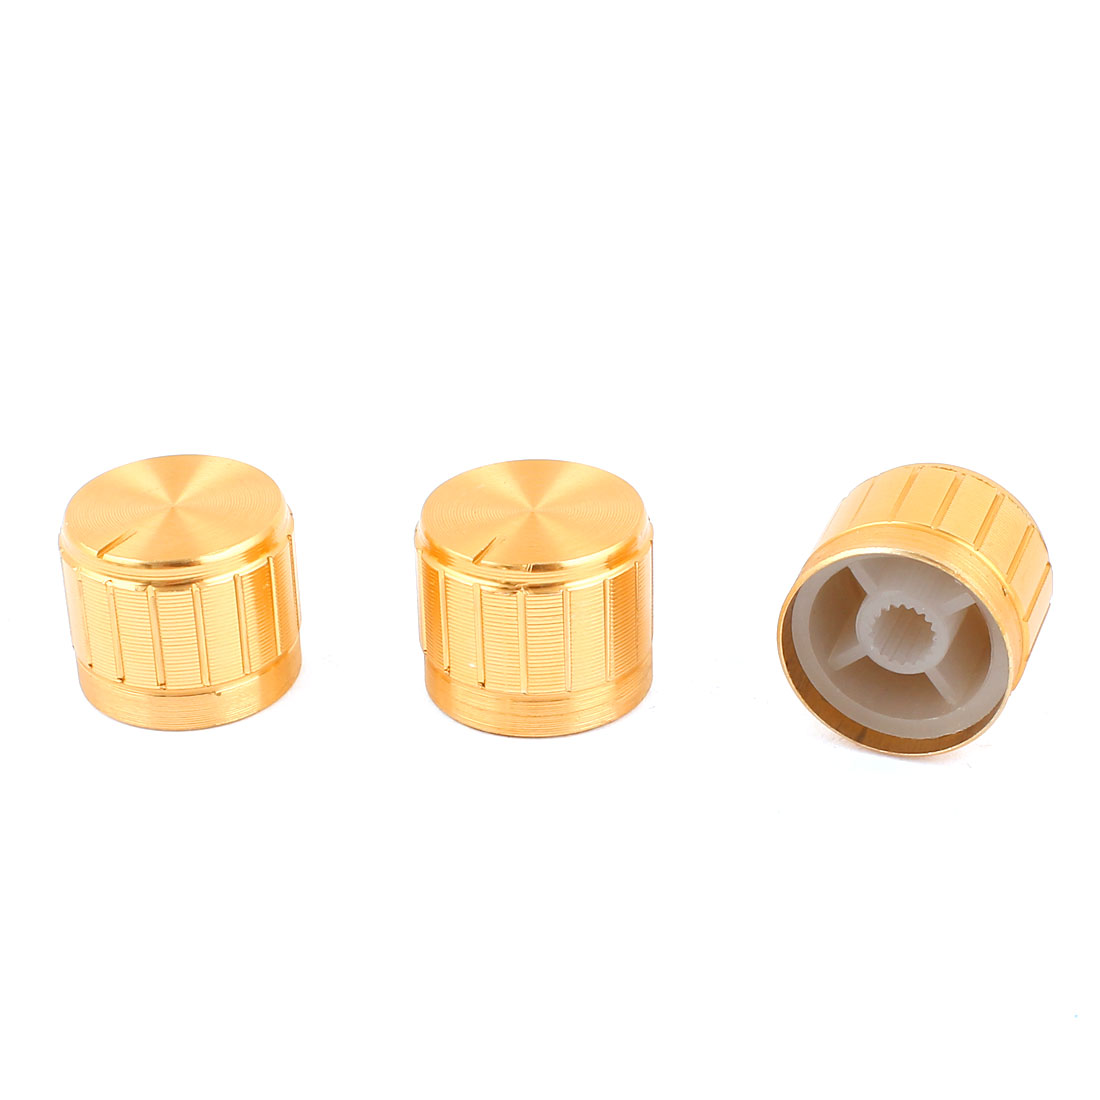 3pcs Rotary Buttons 6mm Dia Knurled Shaft Potentiometer Control Knobs 21mmx17mm